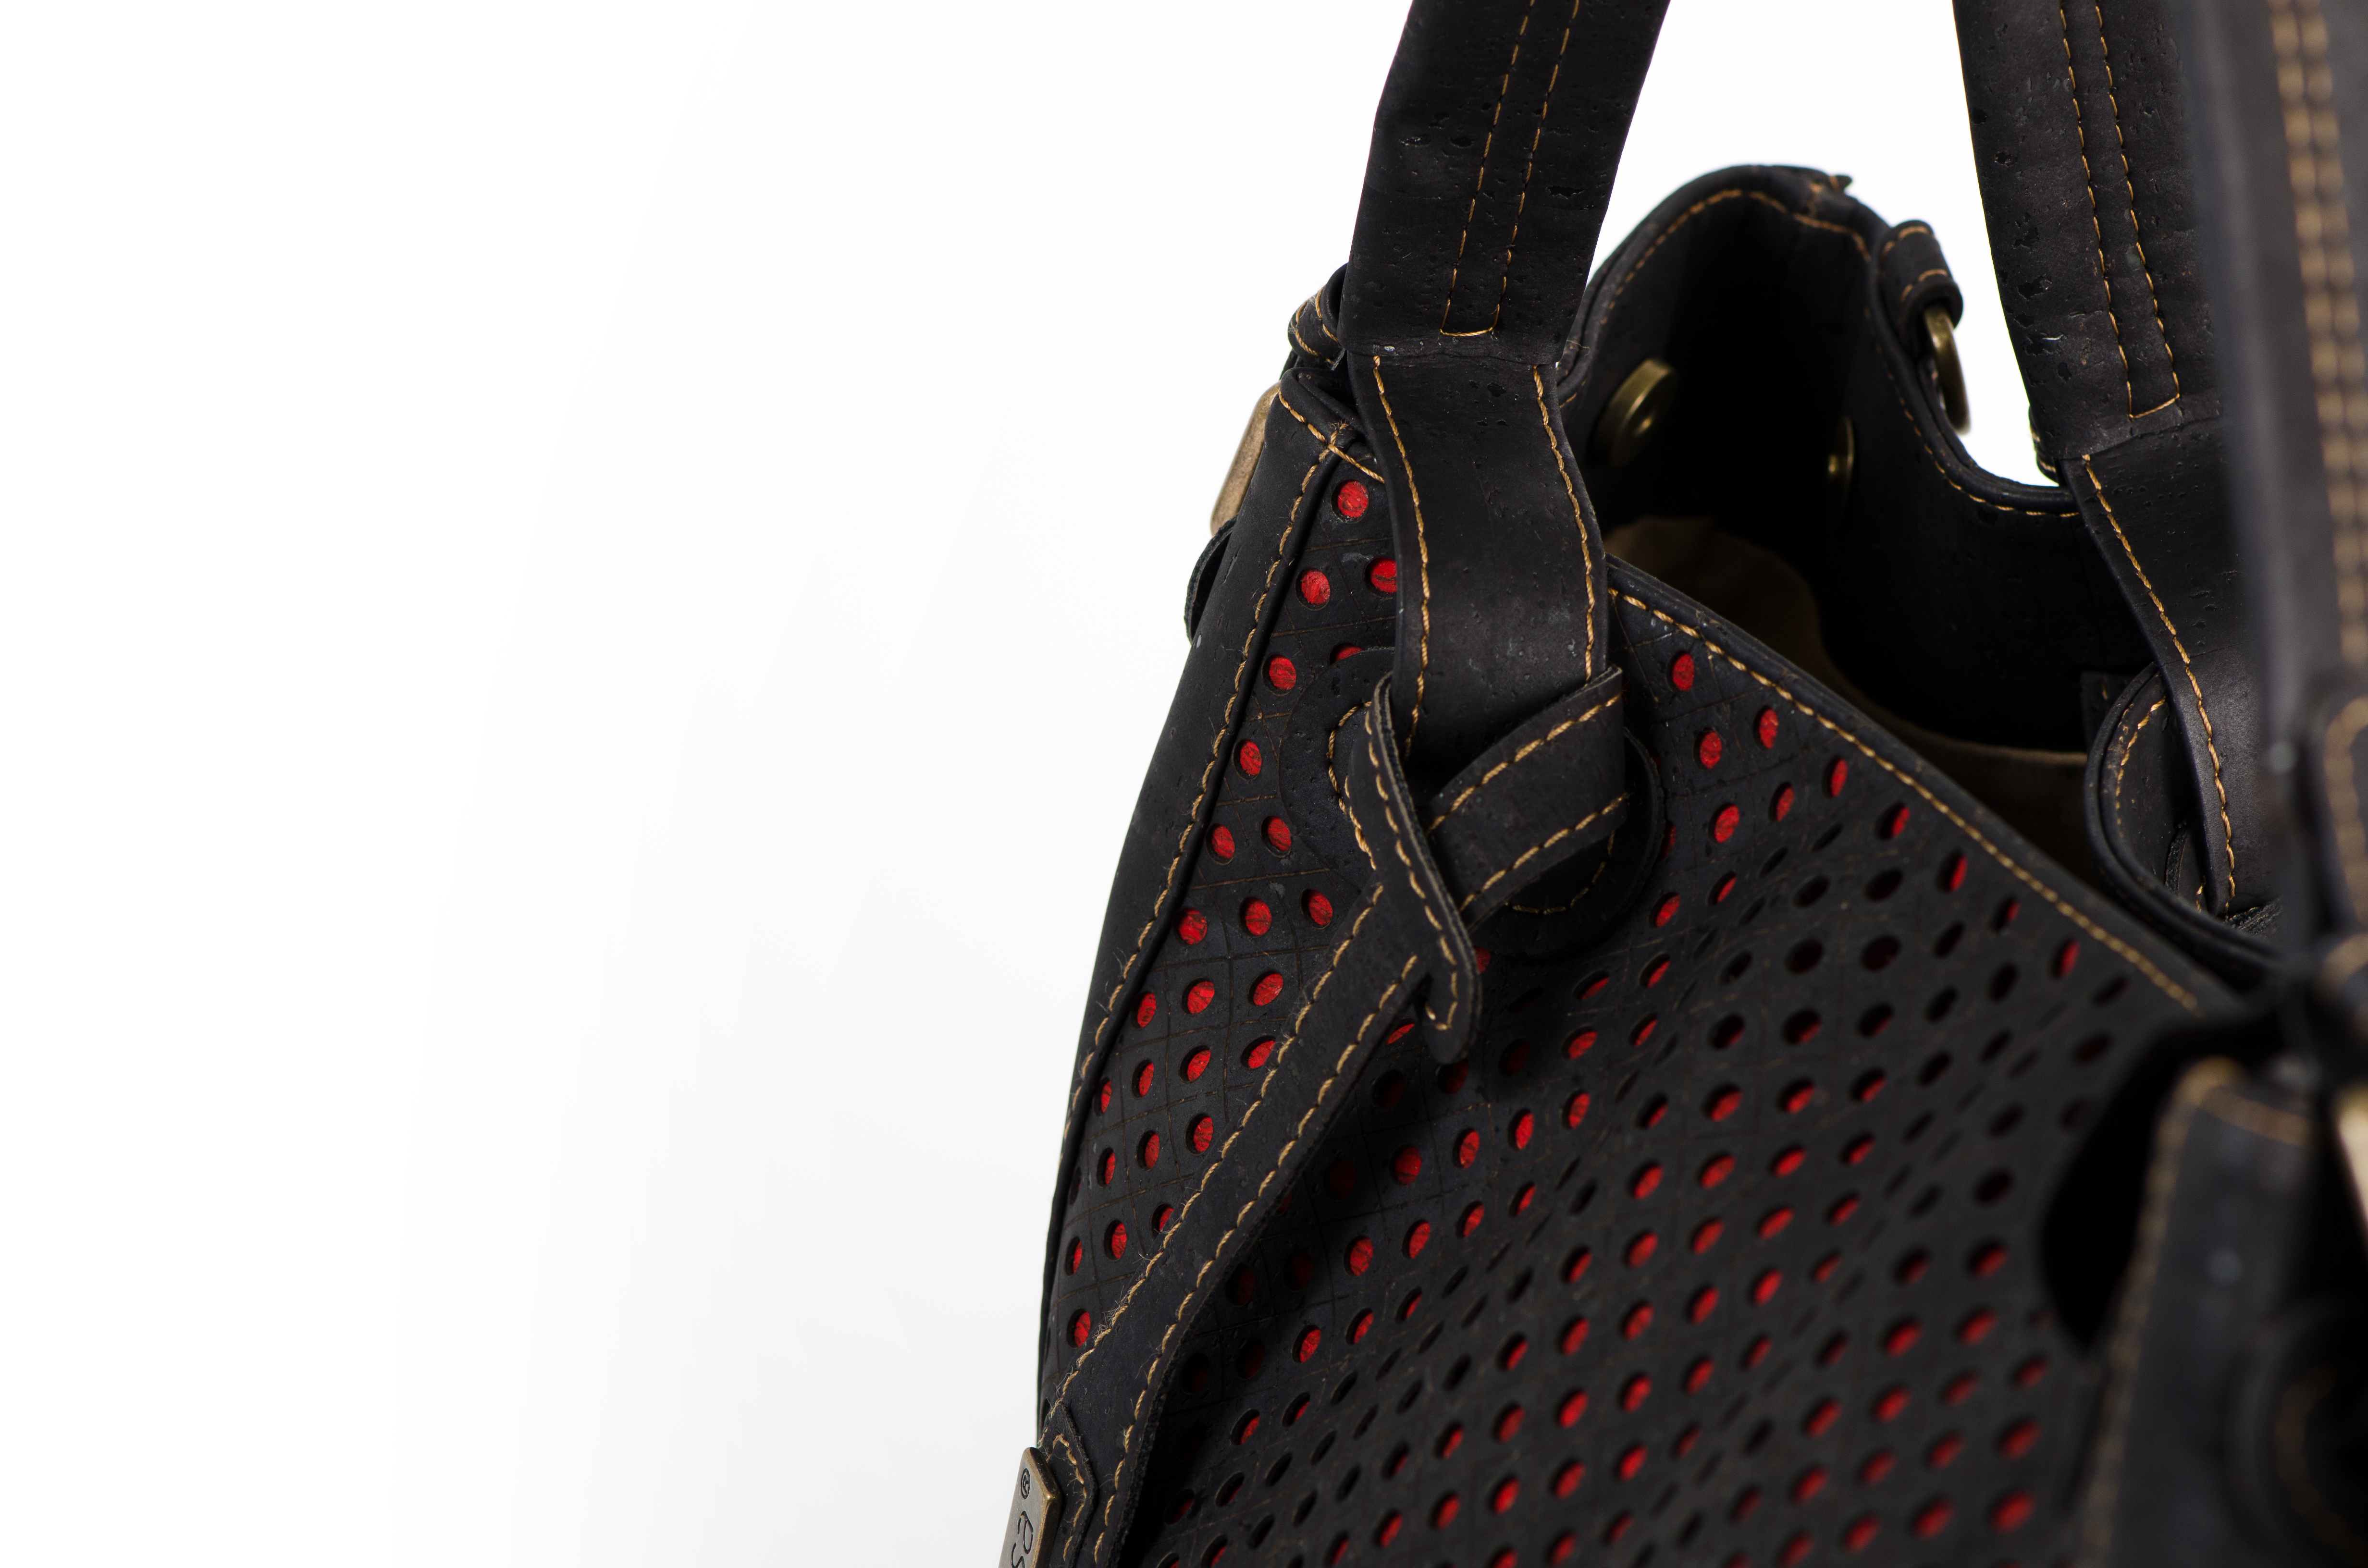 Korktasche, Kork Tasche City Bag, Black \ Red, editorial